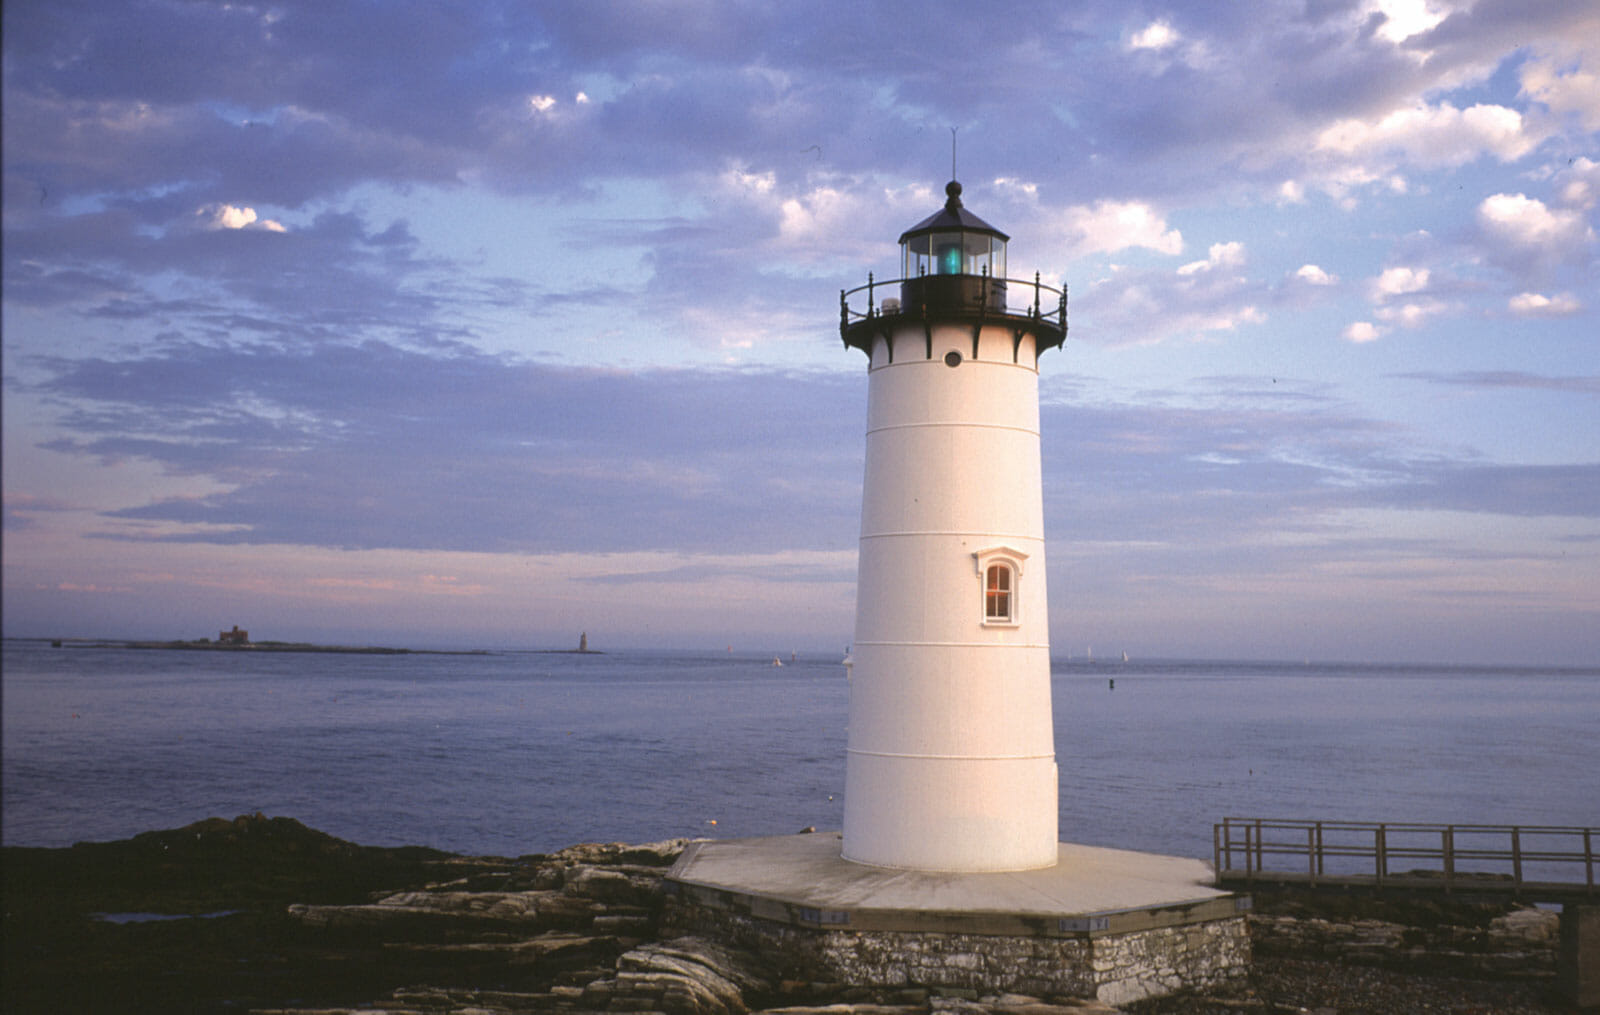 Showcase Lighthouses Photo Contest to win $500 Online 2021